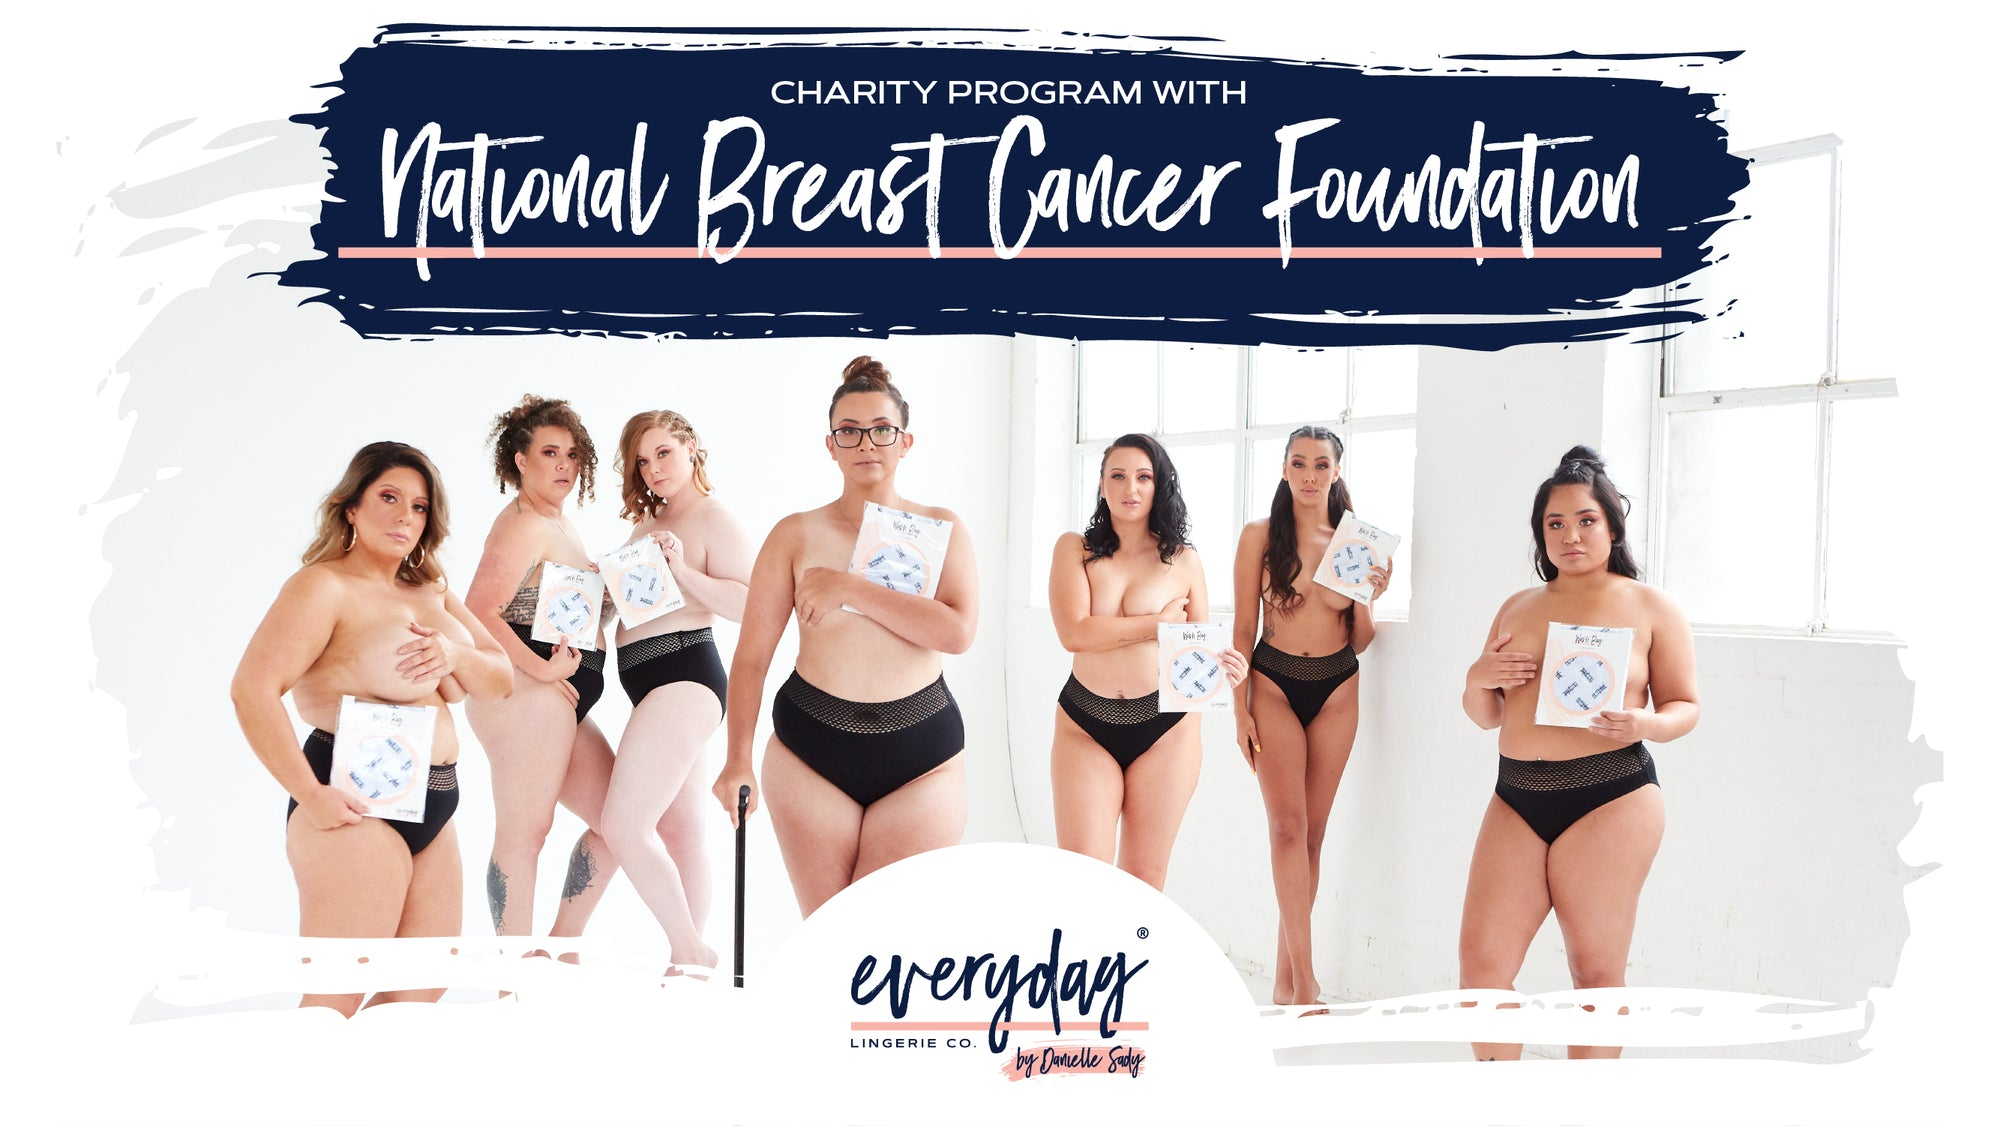 Charity Program with National Breast Cancer Foundation